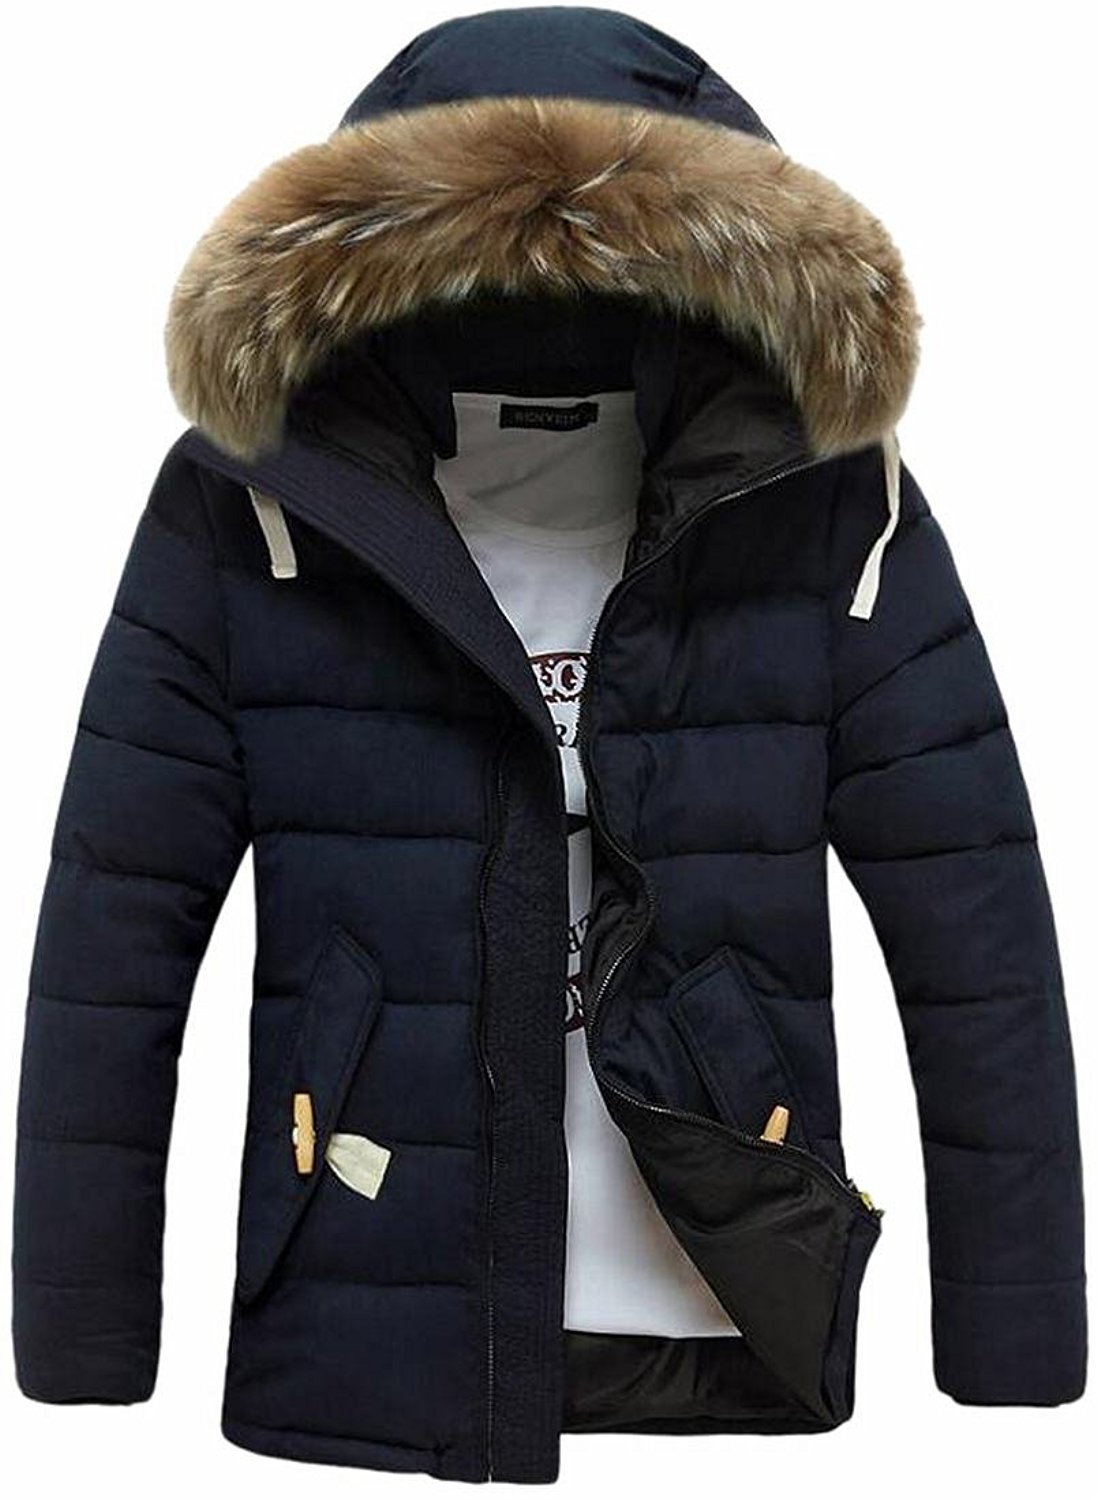 Gnao Mens Casual Thicken Quilted Padded Winter Zip-Up with Hooded Print Pockets Puffer Jacket